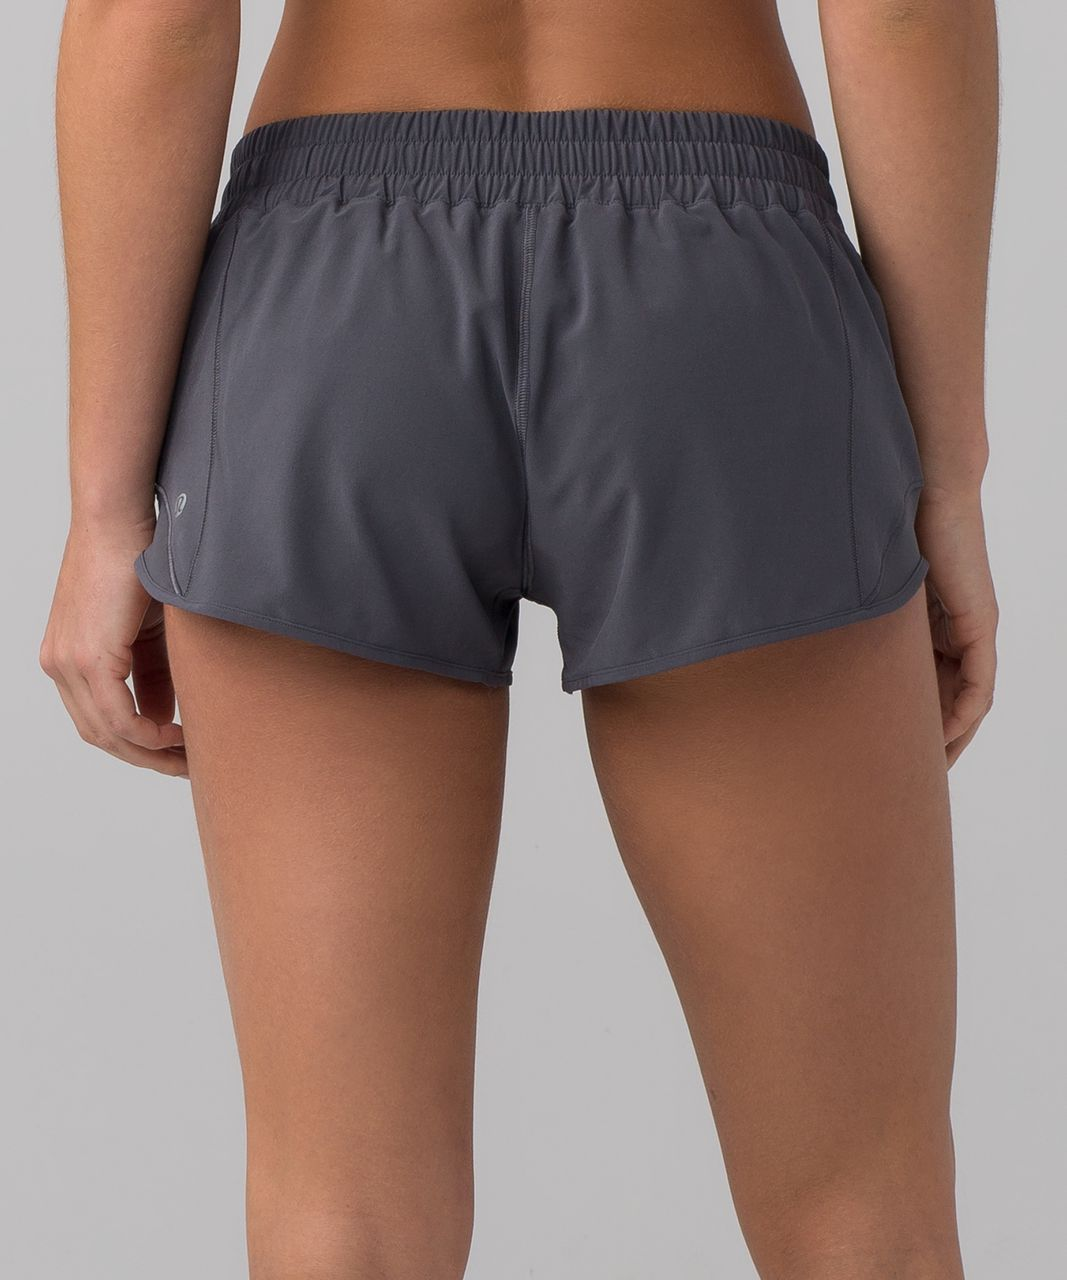 "Lululemon Hotty Hot Short II (2.5"") - Dark Carbon"